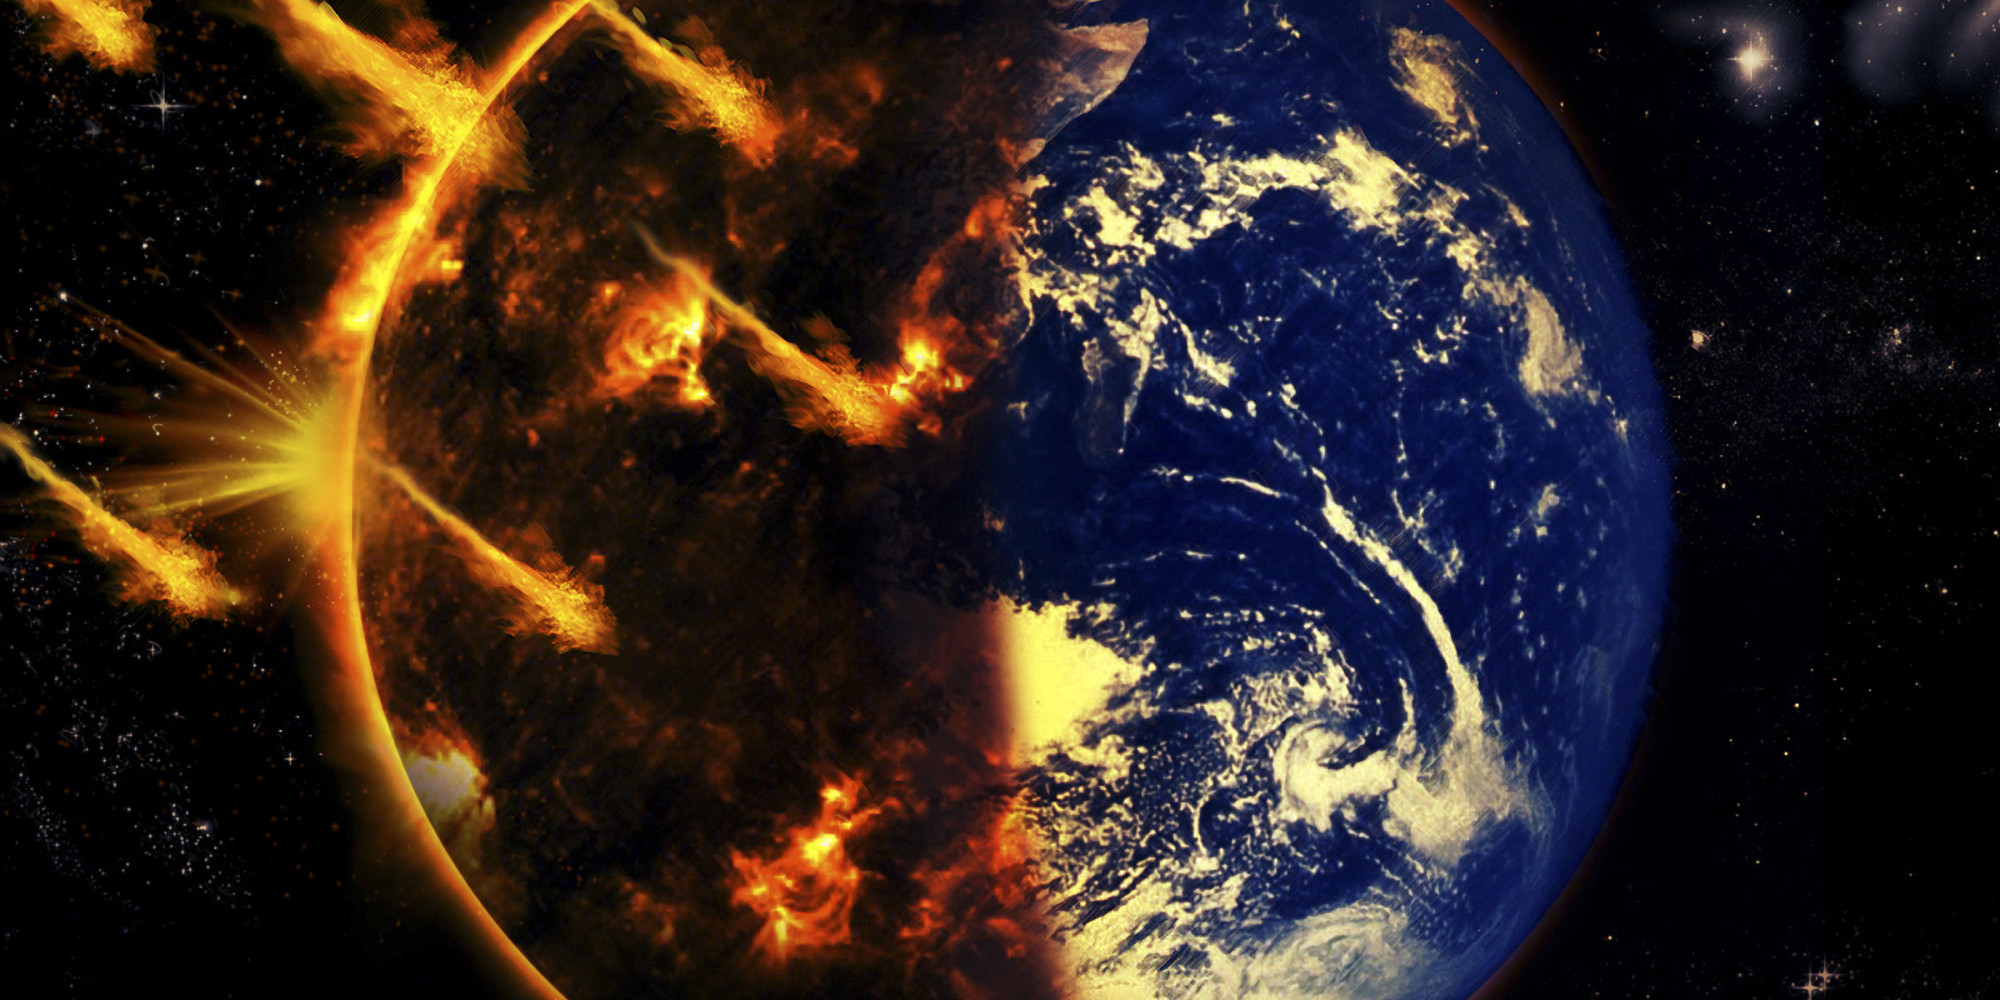 earth asteroid on depression - photo #14